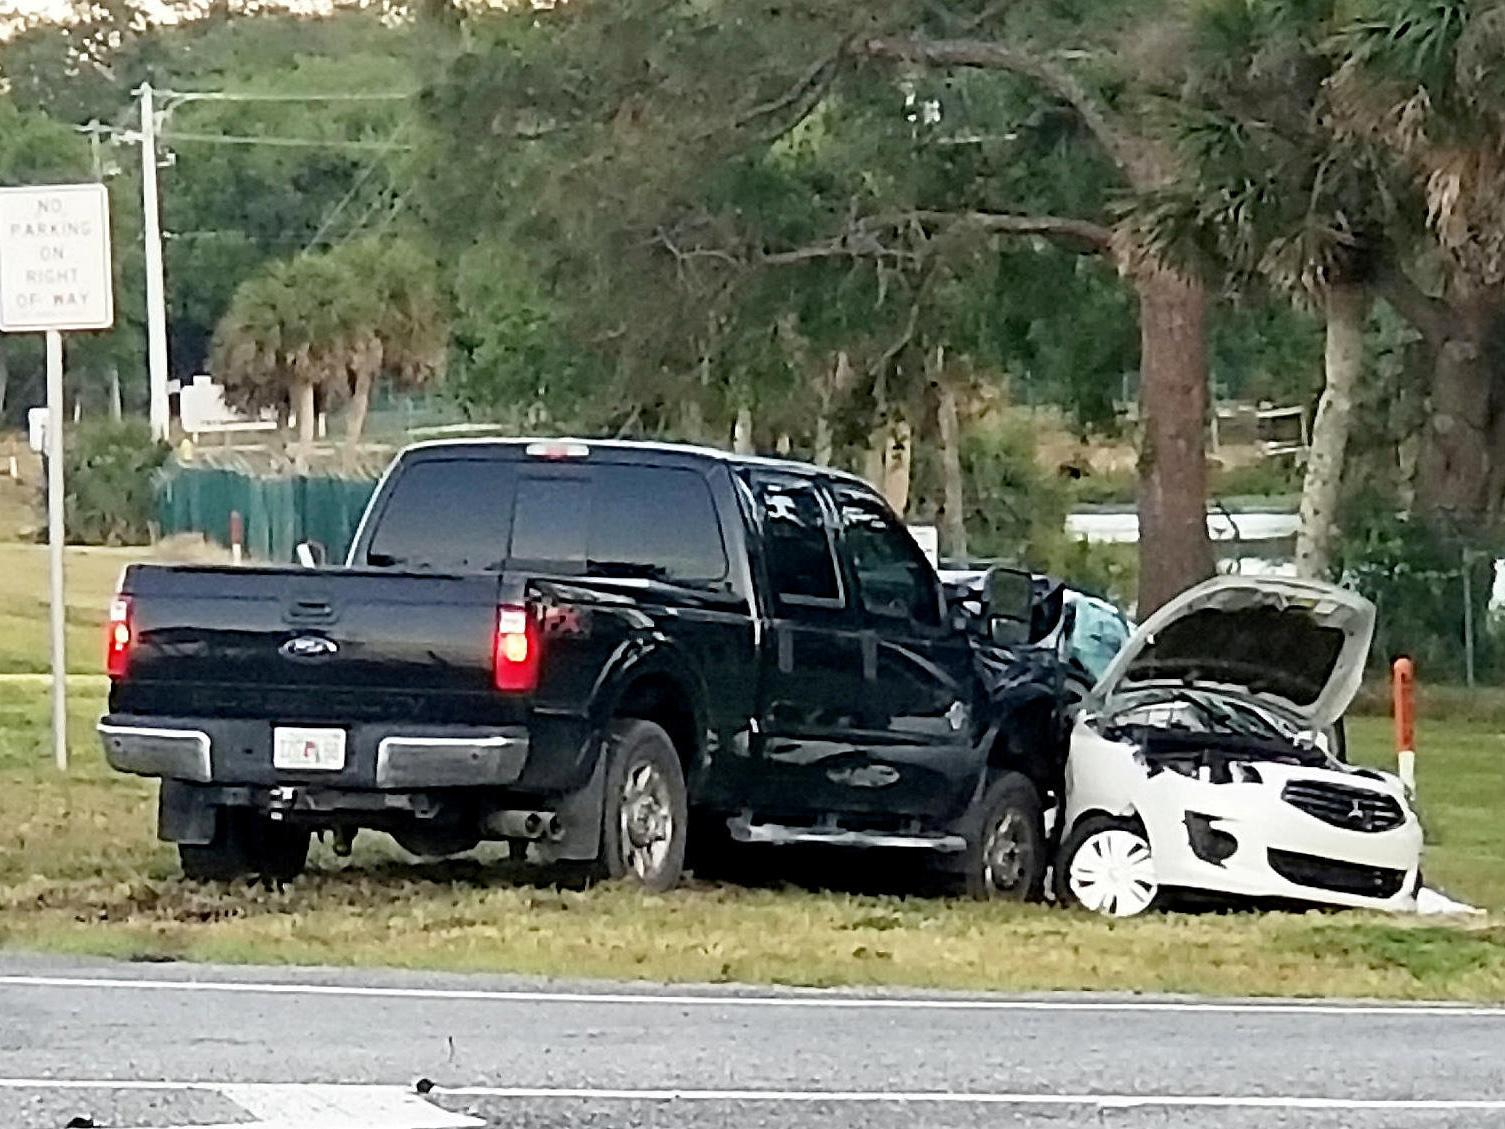 florida car crash kills four british family members | the independent